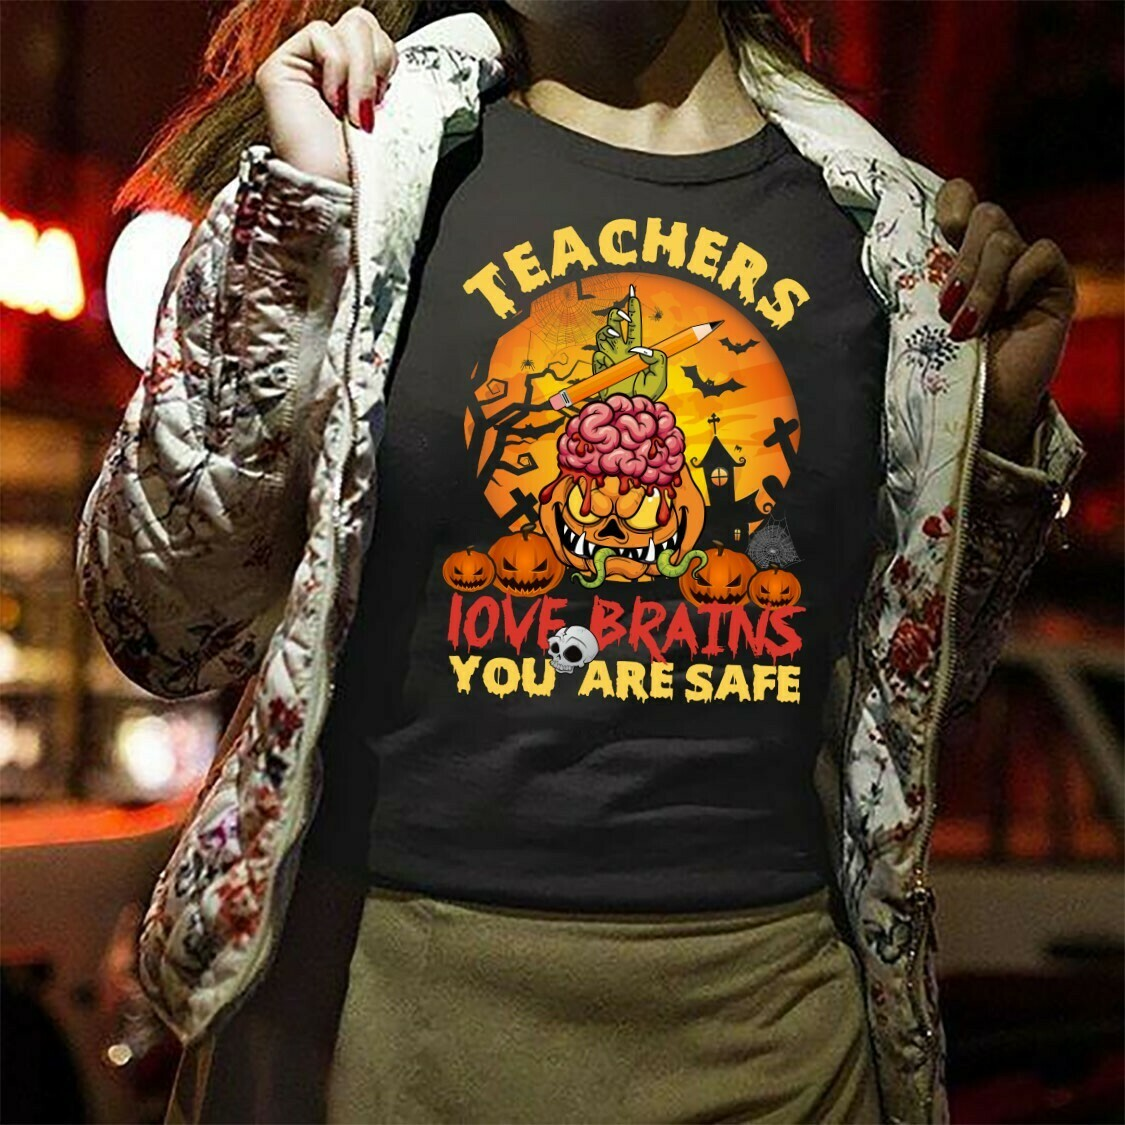 Teachers Love Brains You Are Sale, Zombie Pumpkin Teacher Halloween Not So Scary Gifts T-shirt For Lovers Teachers On Halloween Day Long Sleeve Sweatshirt Hoodie Jolly Family Gifts